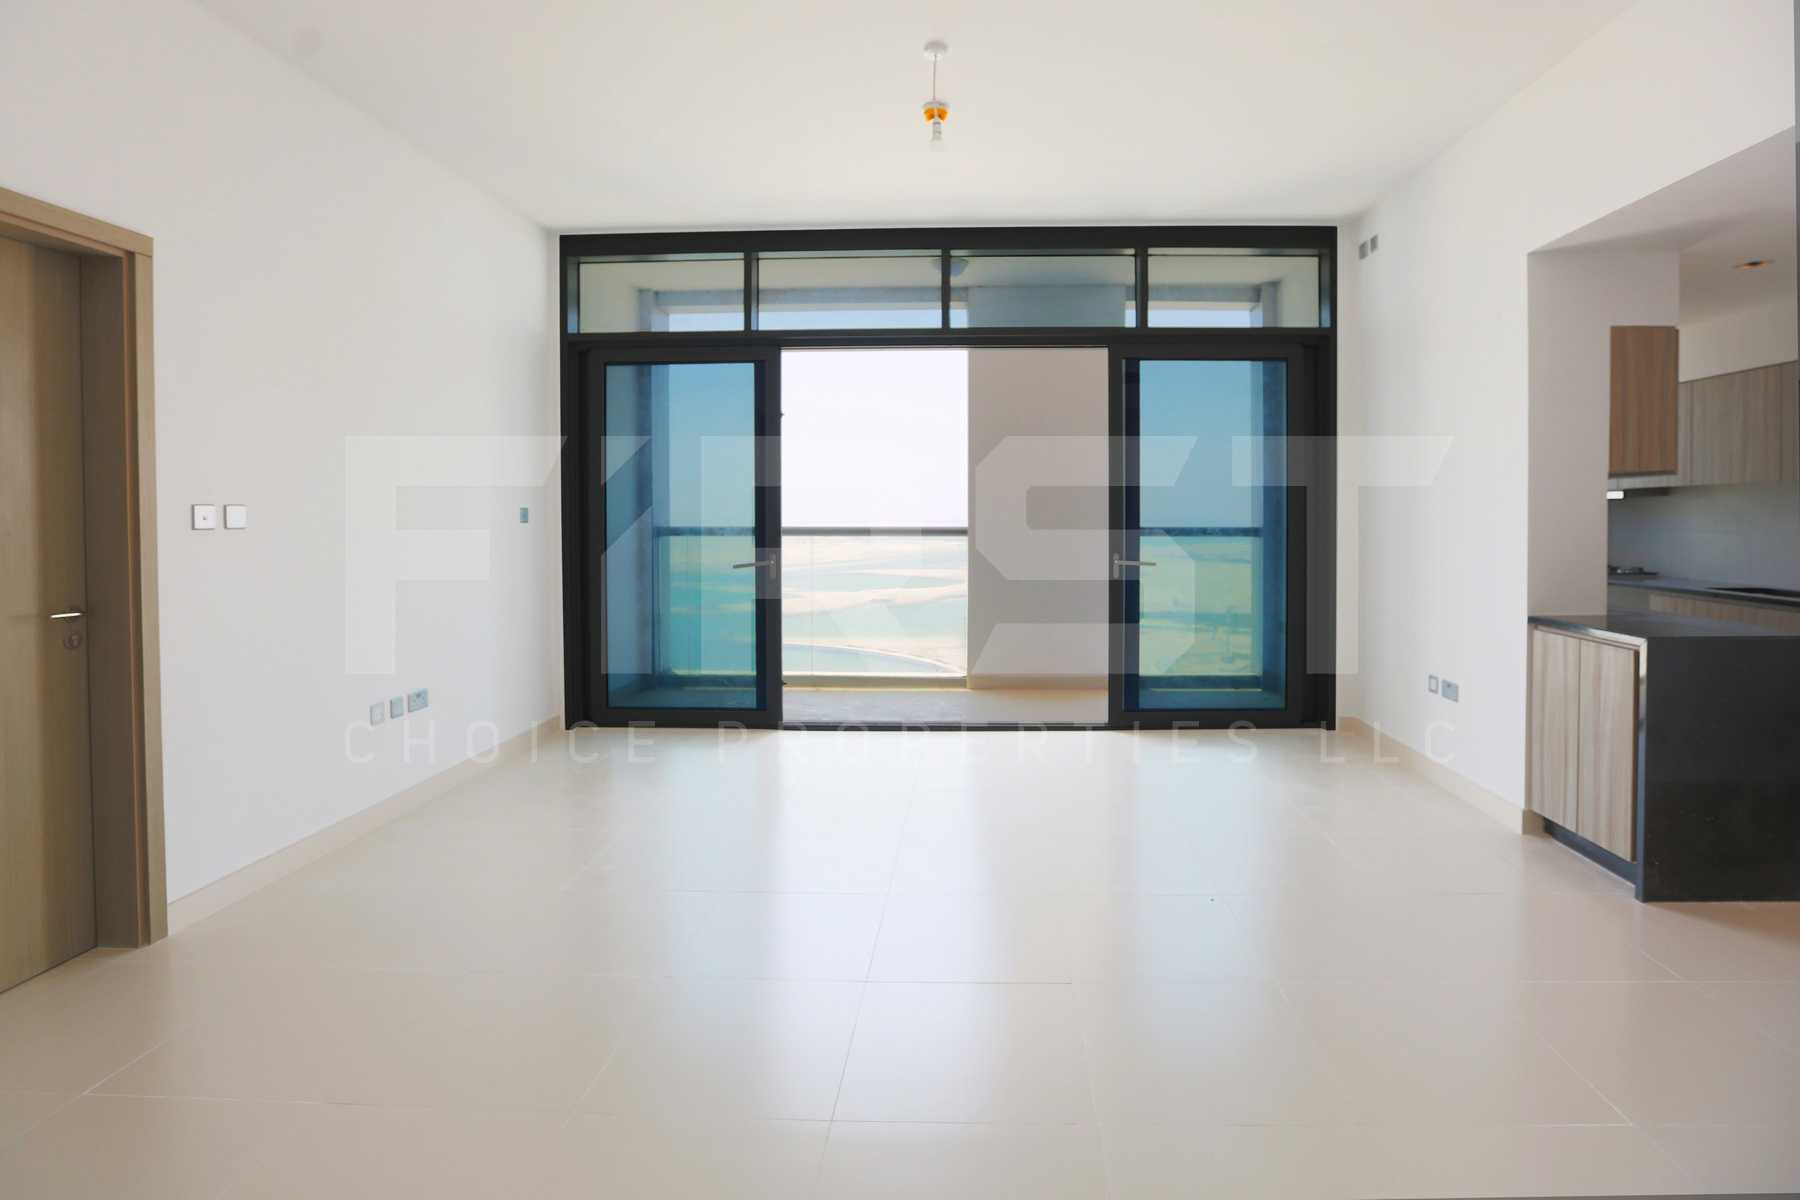 Internal Photo of 3 Bedroom Apartment in Meera Shams Al Reem Island Abu Dhabi UAE (9).jpg